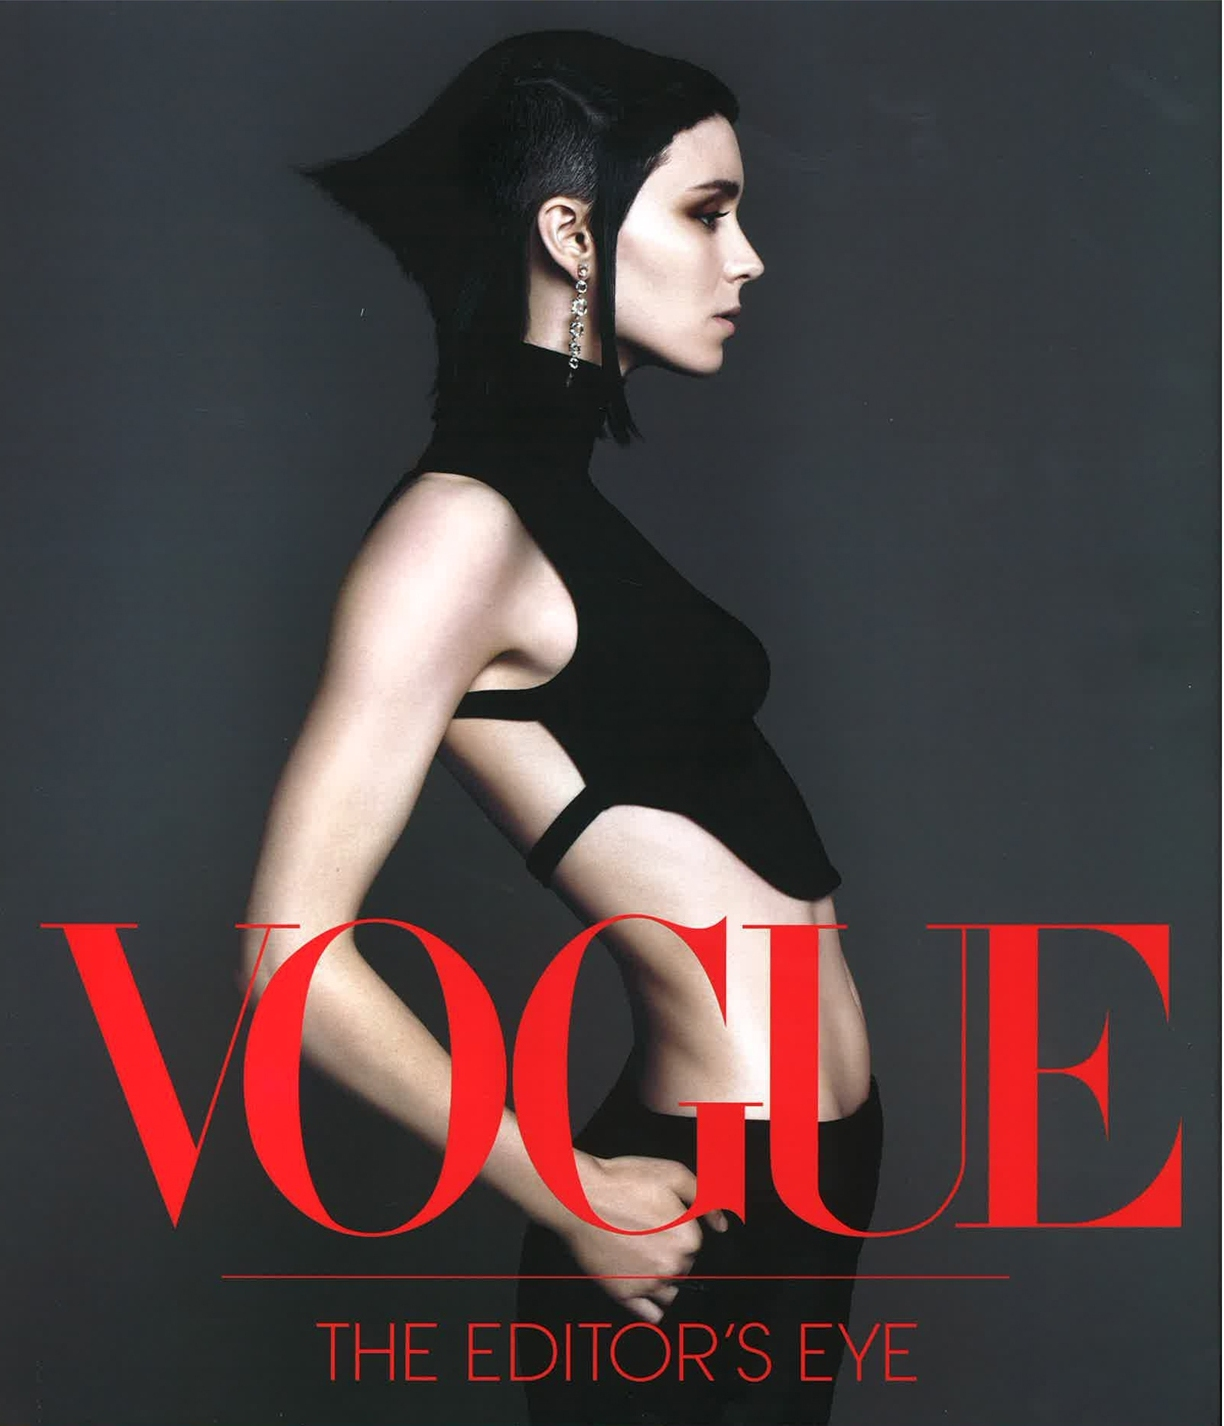 http://2.bp.blogspot.com/-o31vIm7s_I0/ULgSGzR5nEI/AAAAAAAA1k0/jHX3C9pi7LU/s1600/Book-Cover-Vogue-The-Editors-Eye.jpg